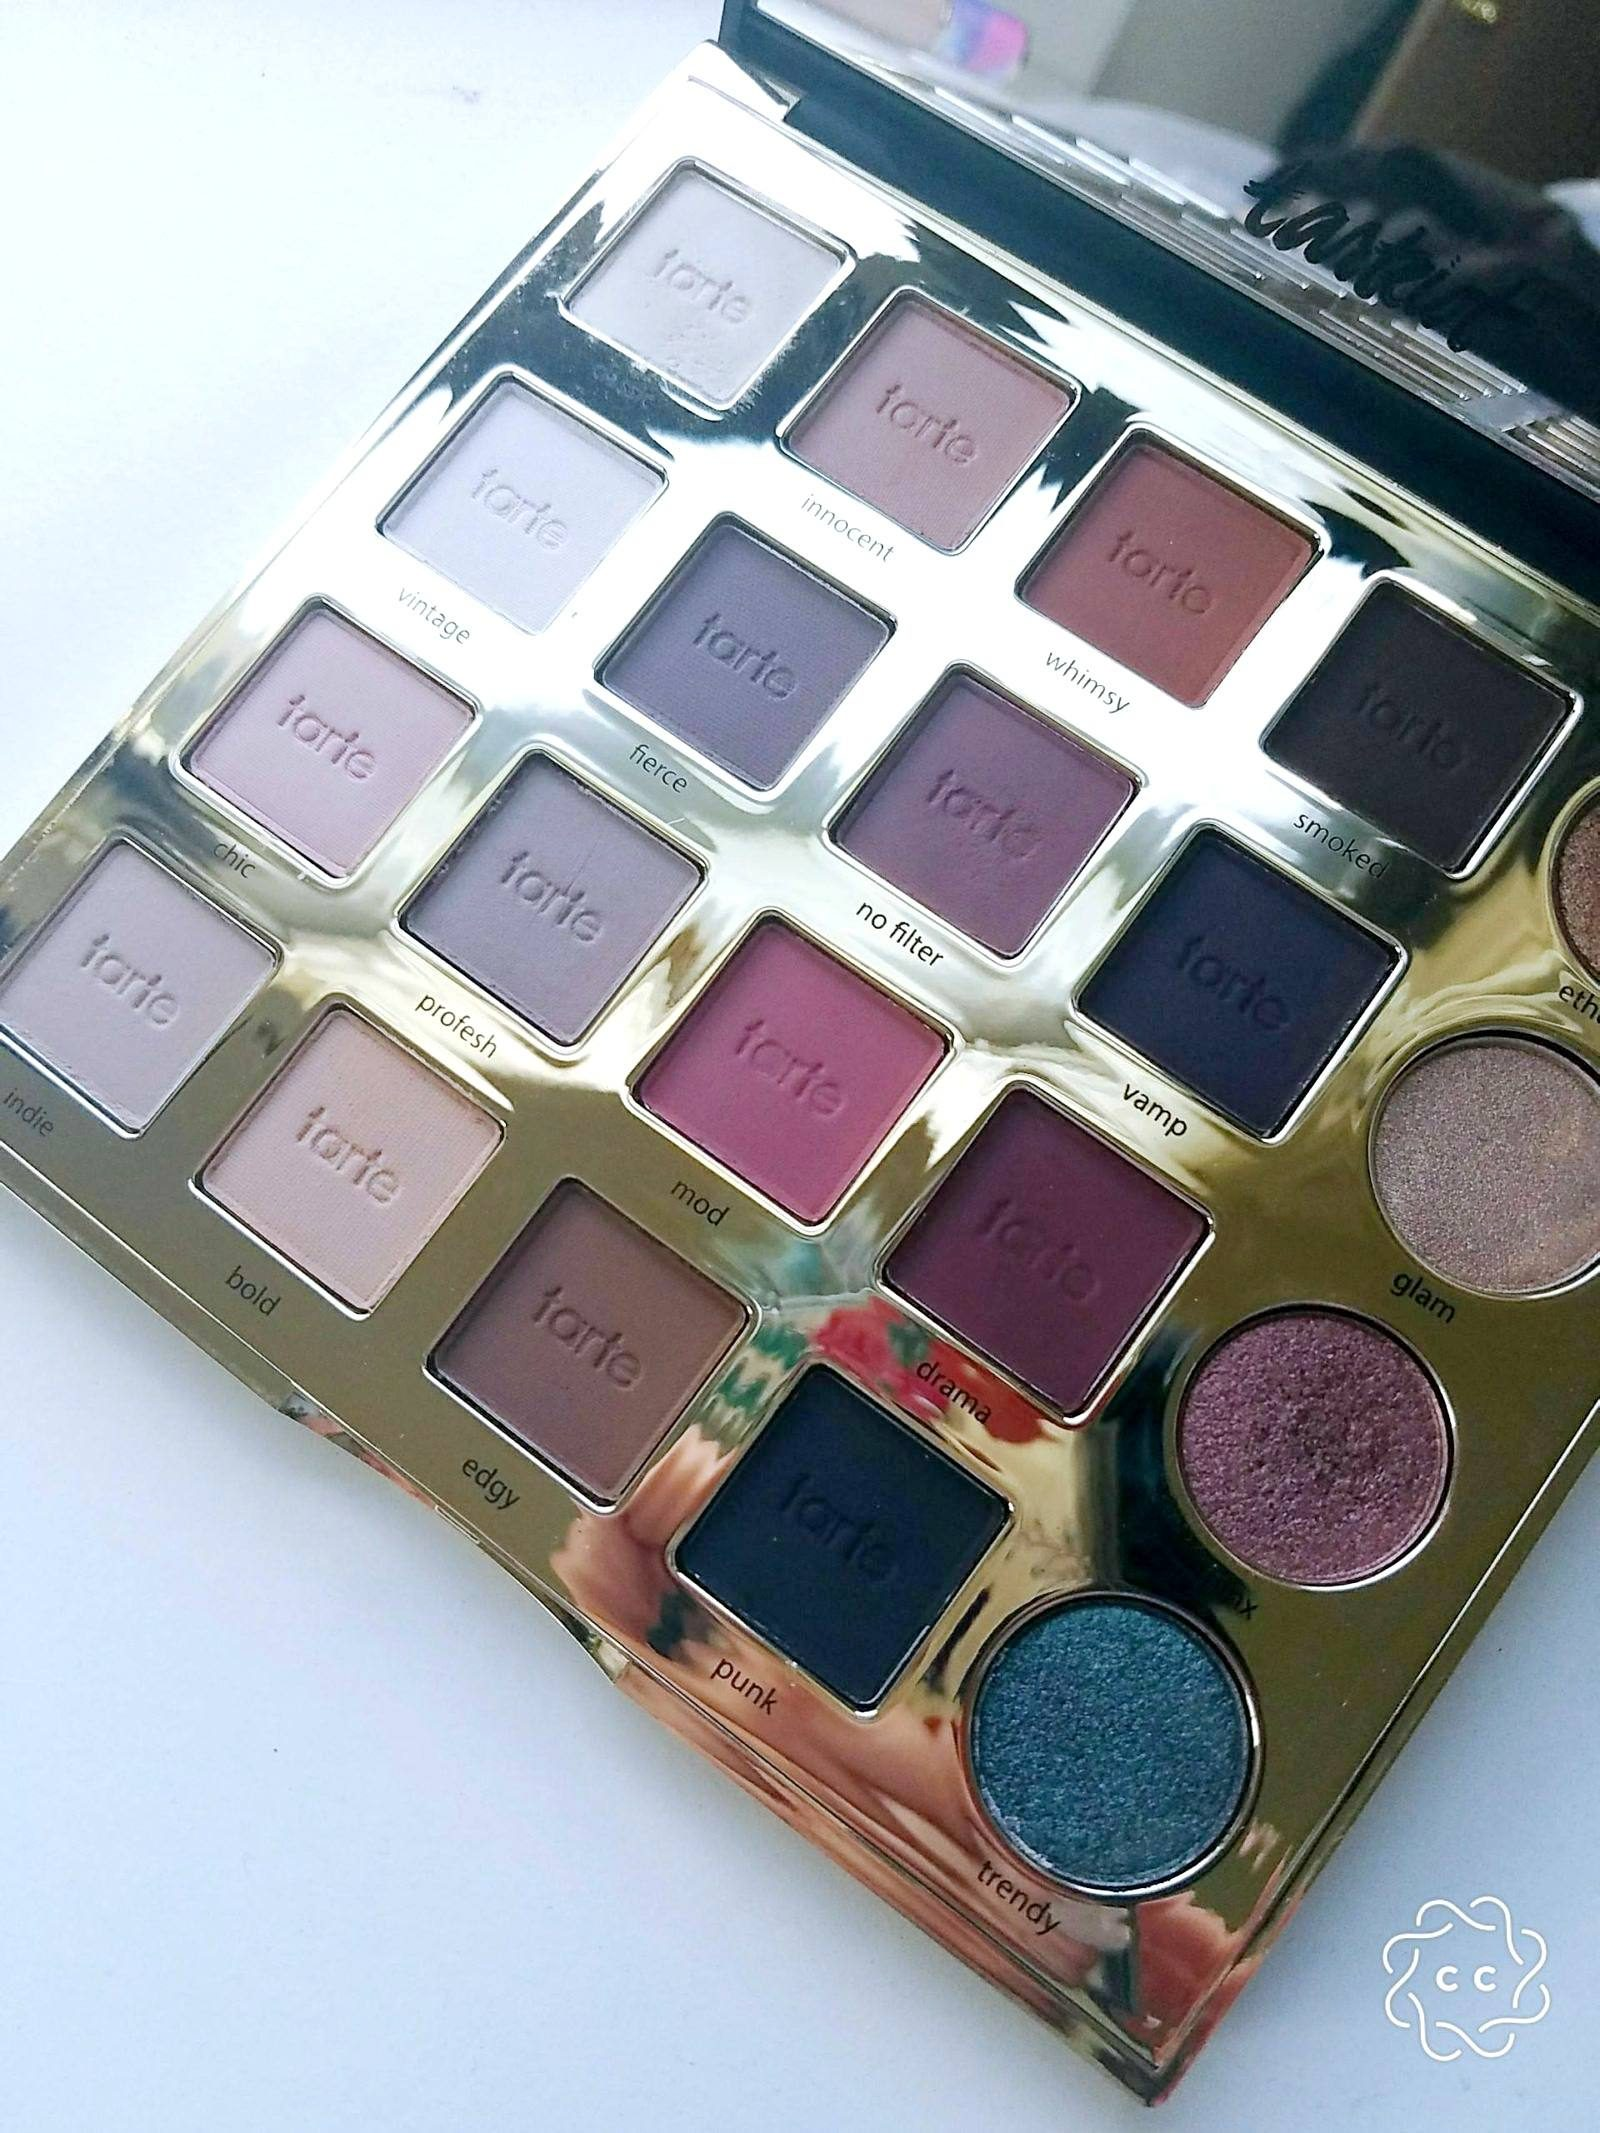 tarteist pro eye shadow blood of a thousand stars